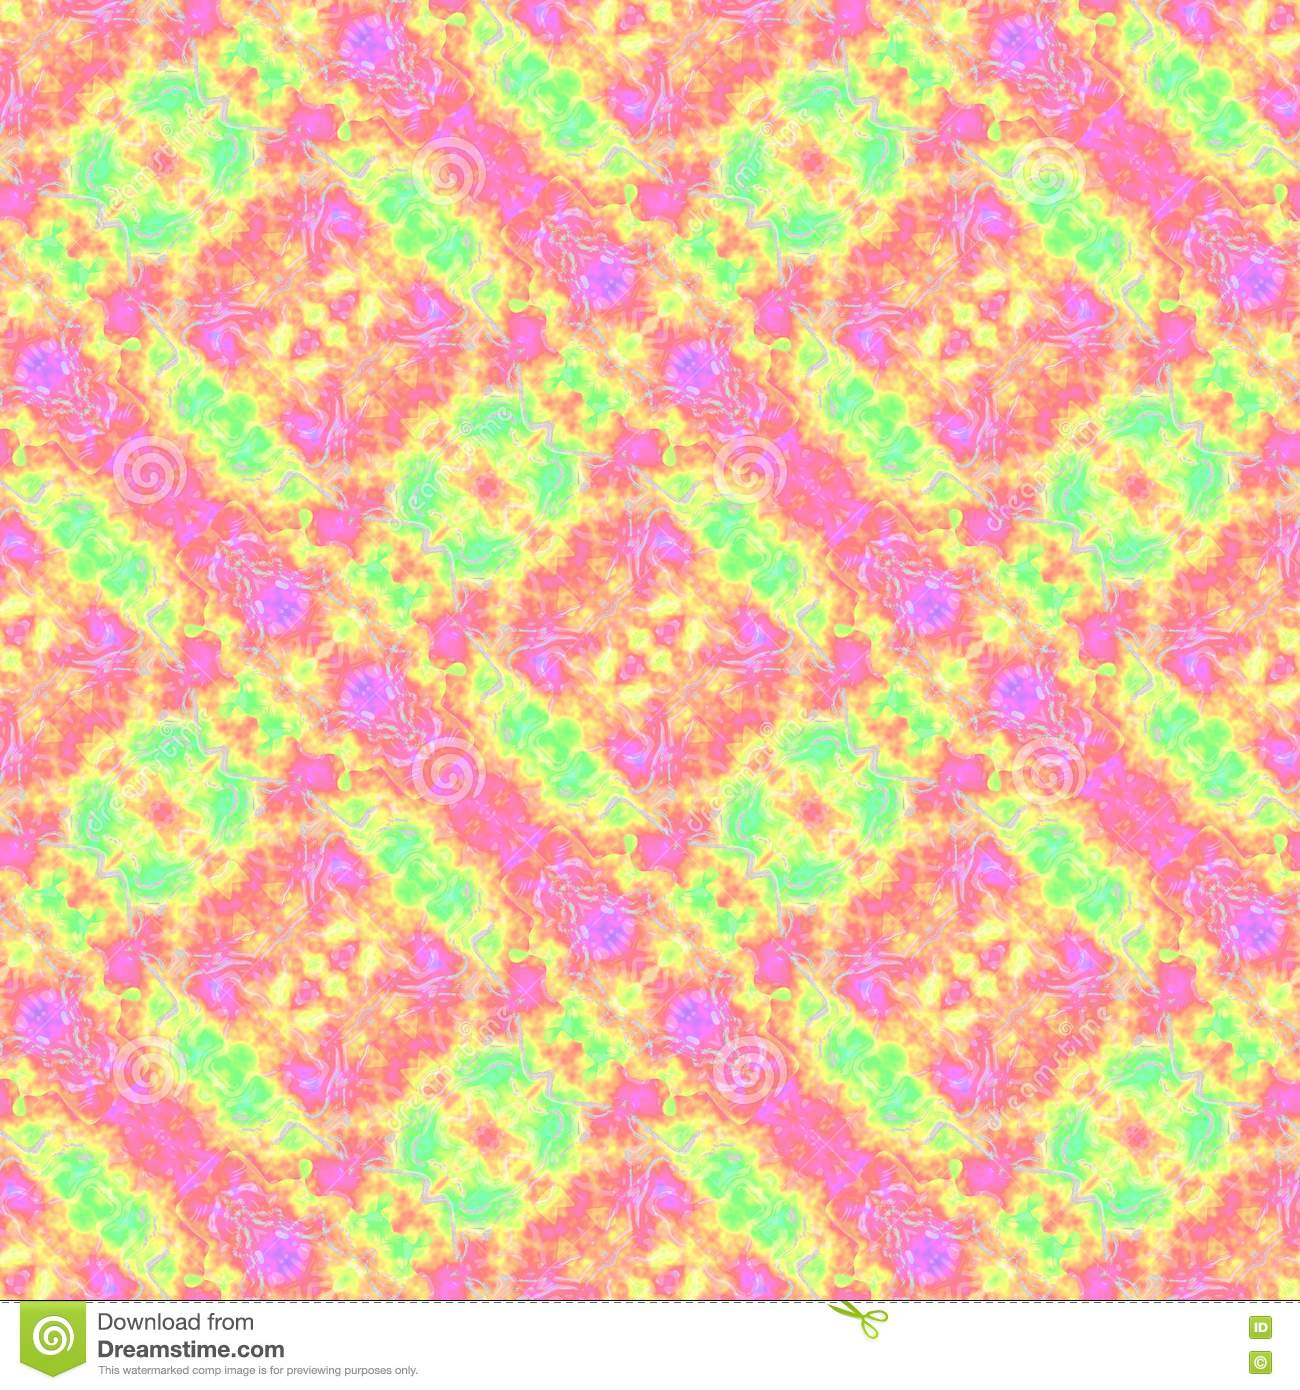 Pink yellow green oblique fractal pattern